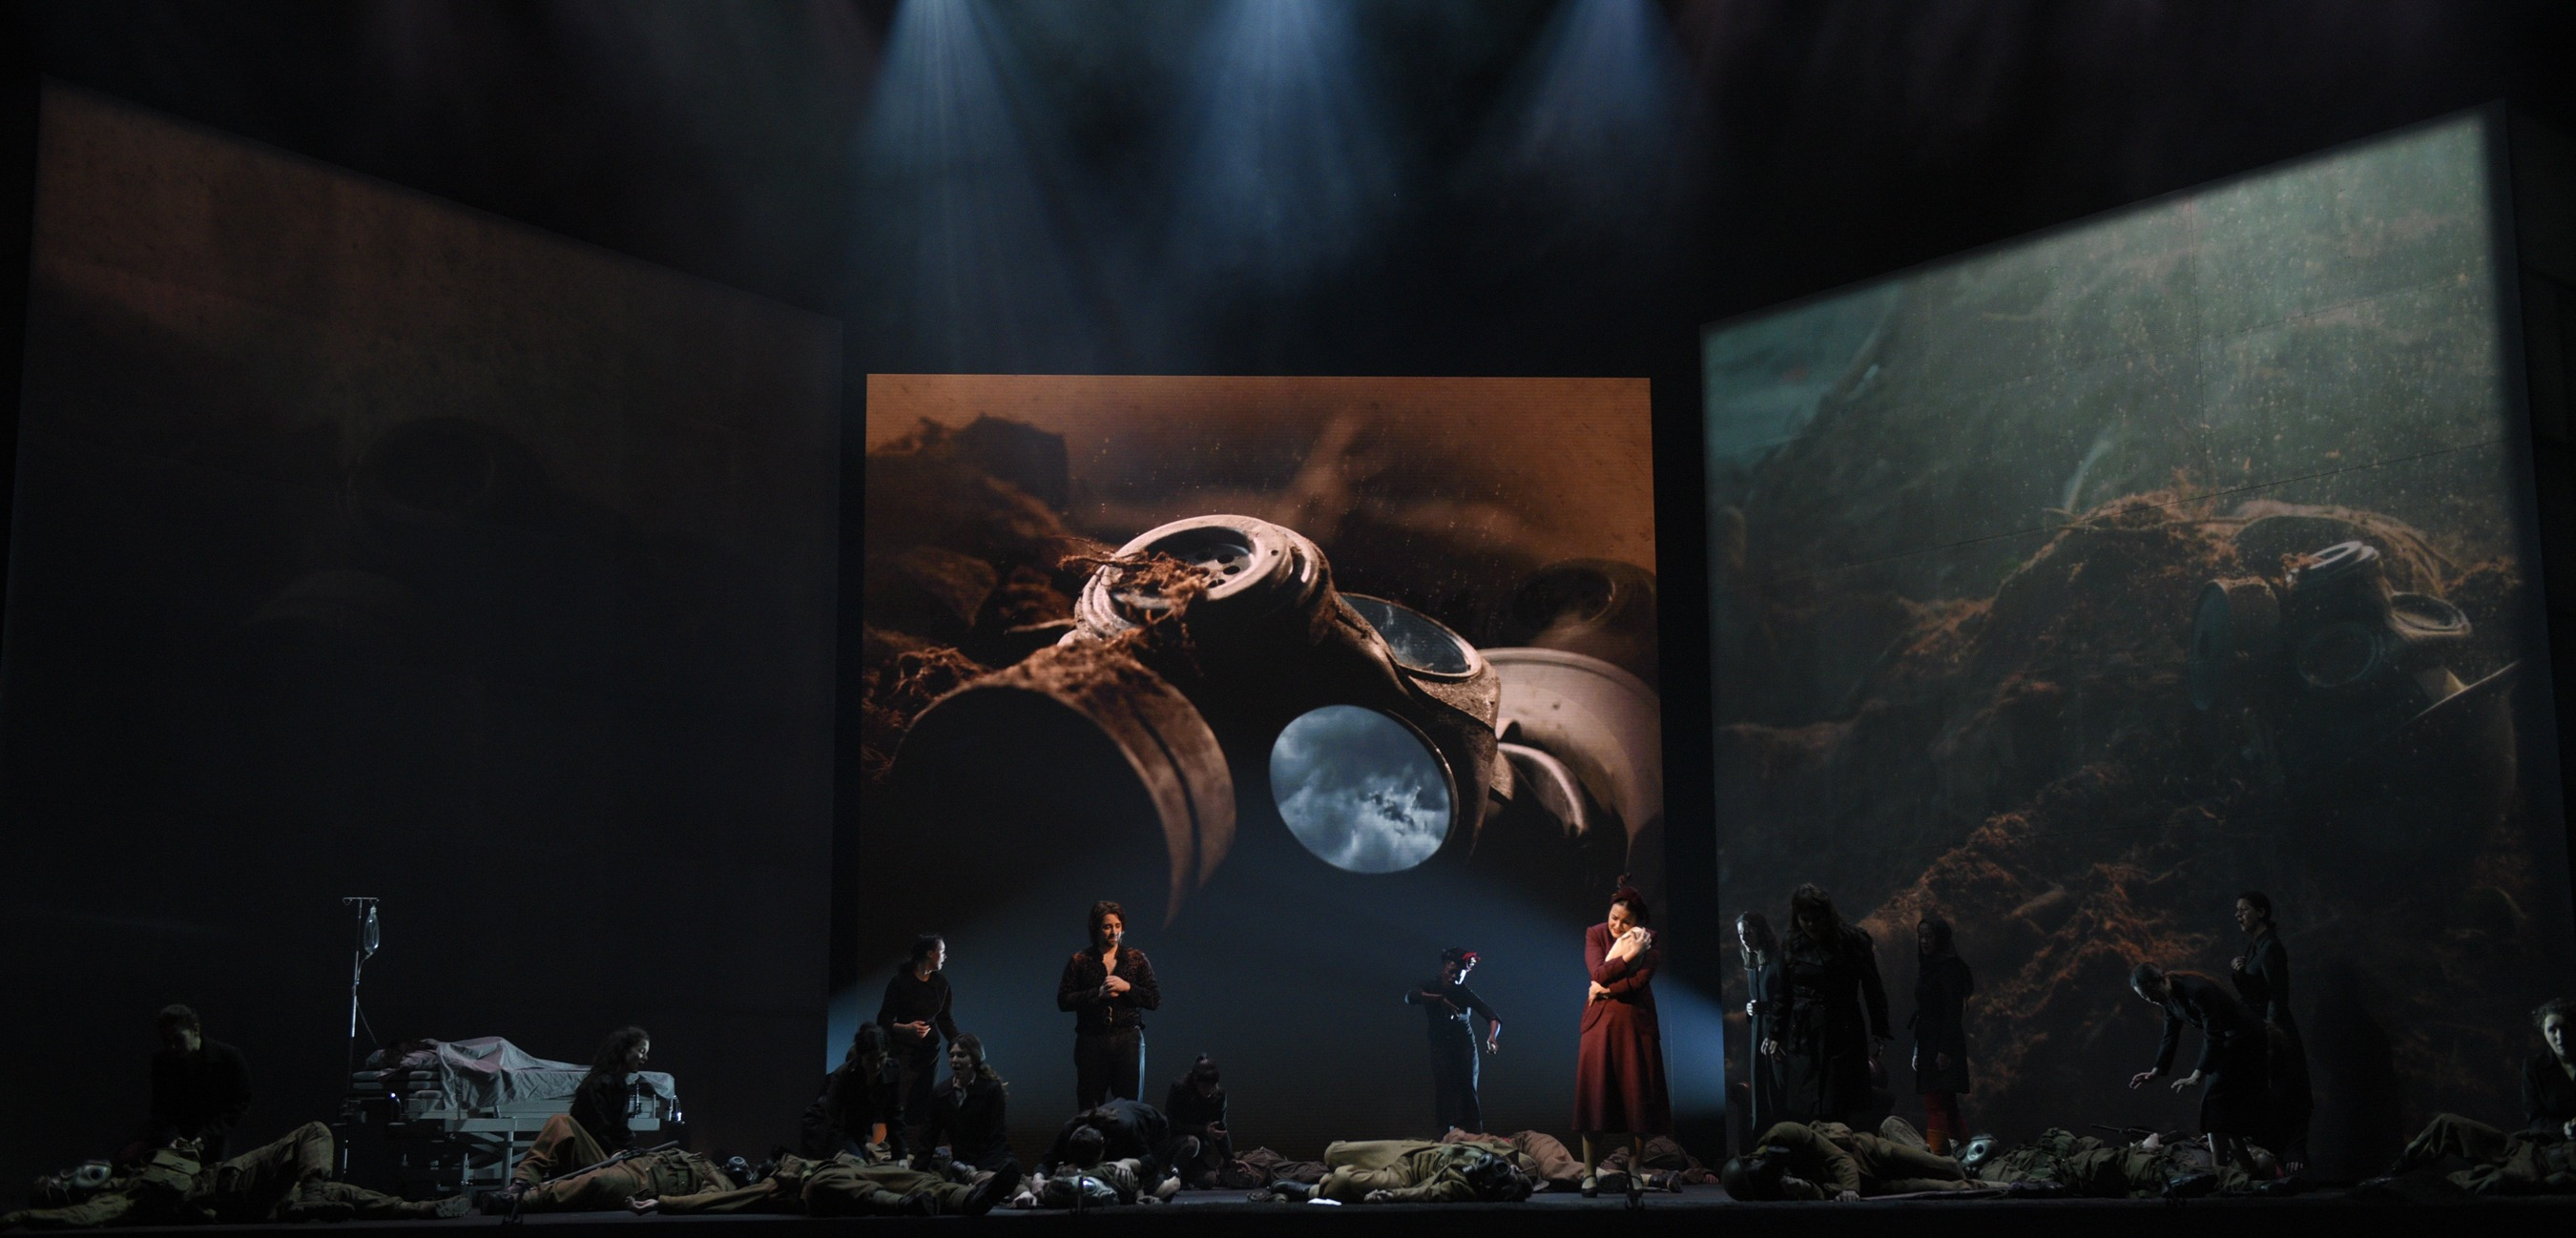 Win tickets to see the opera Another Brick in the Wall in Toronto (CONTEST)